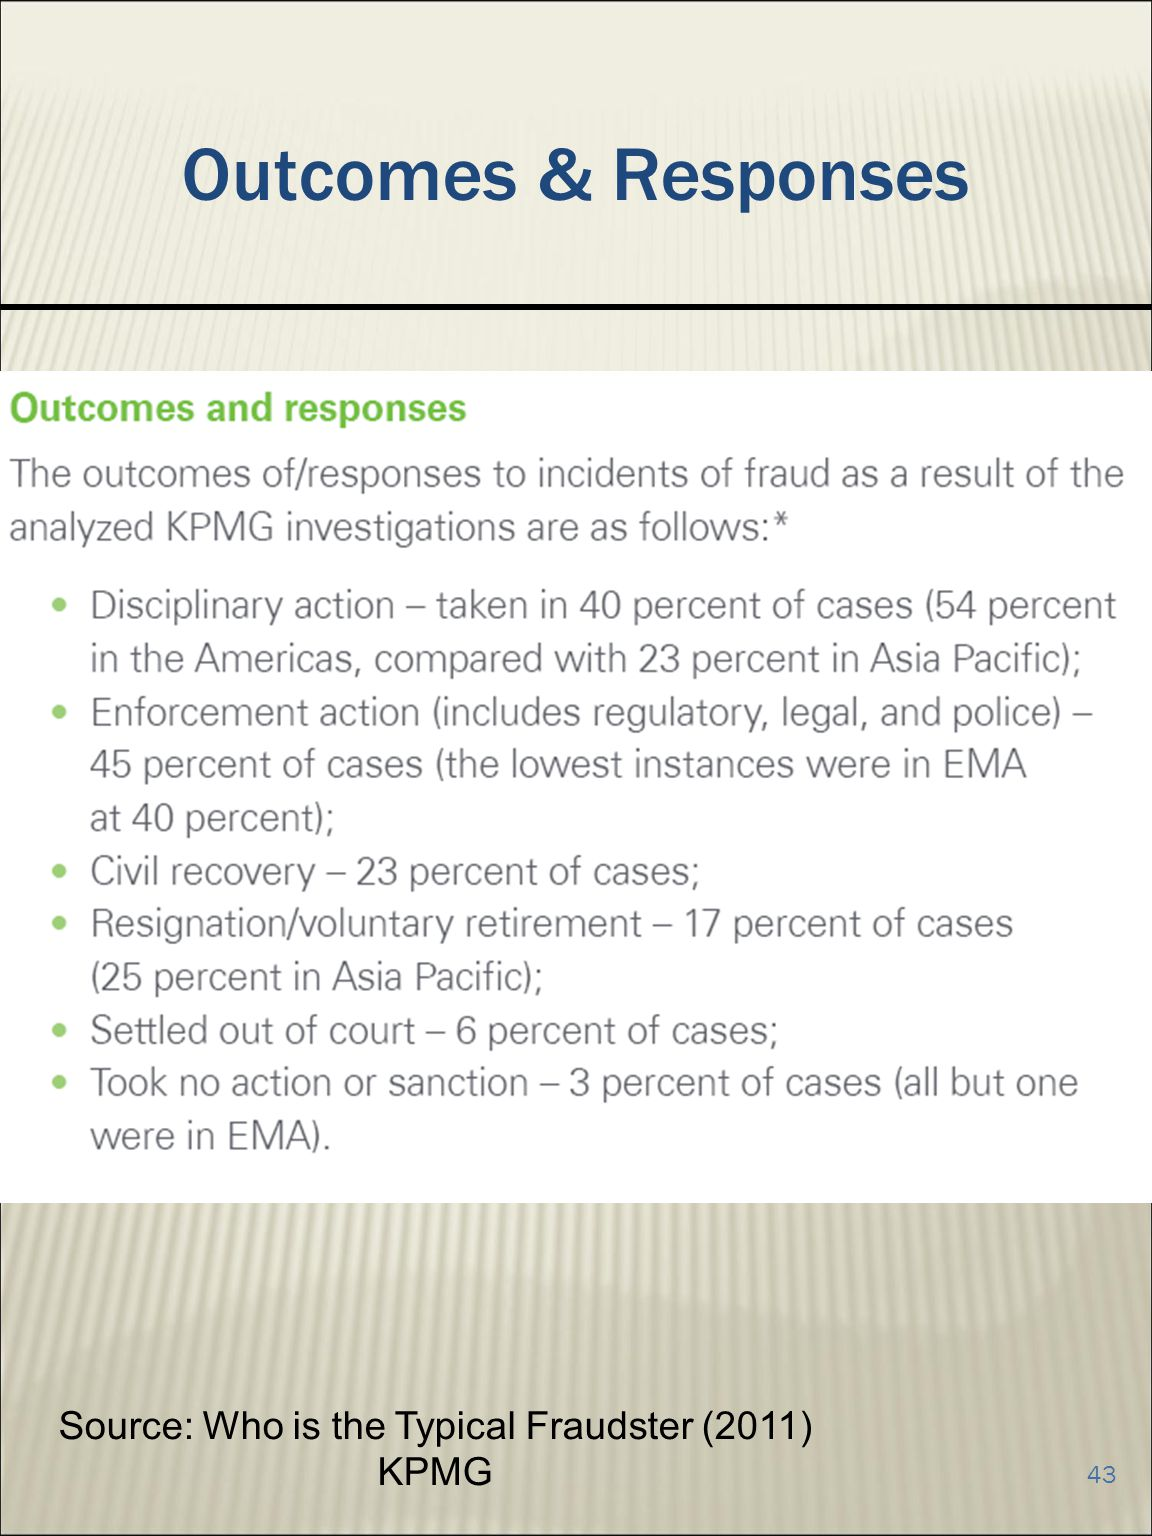 43 Outcomes & Responses Source: Who is the Typical Fraudster (2011) KPMG